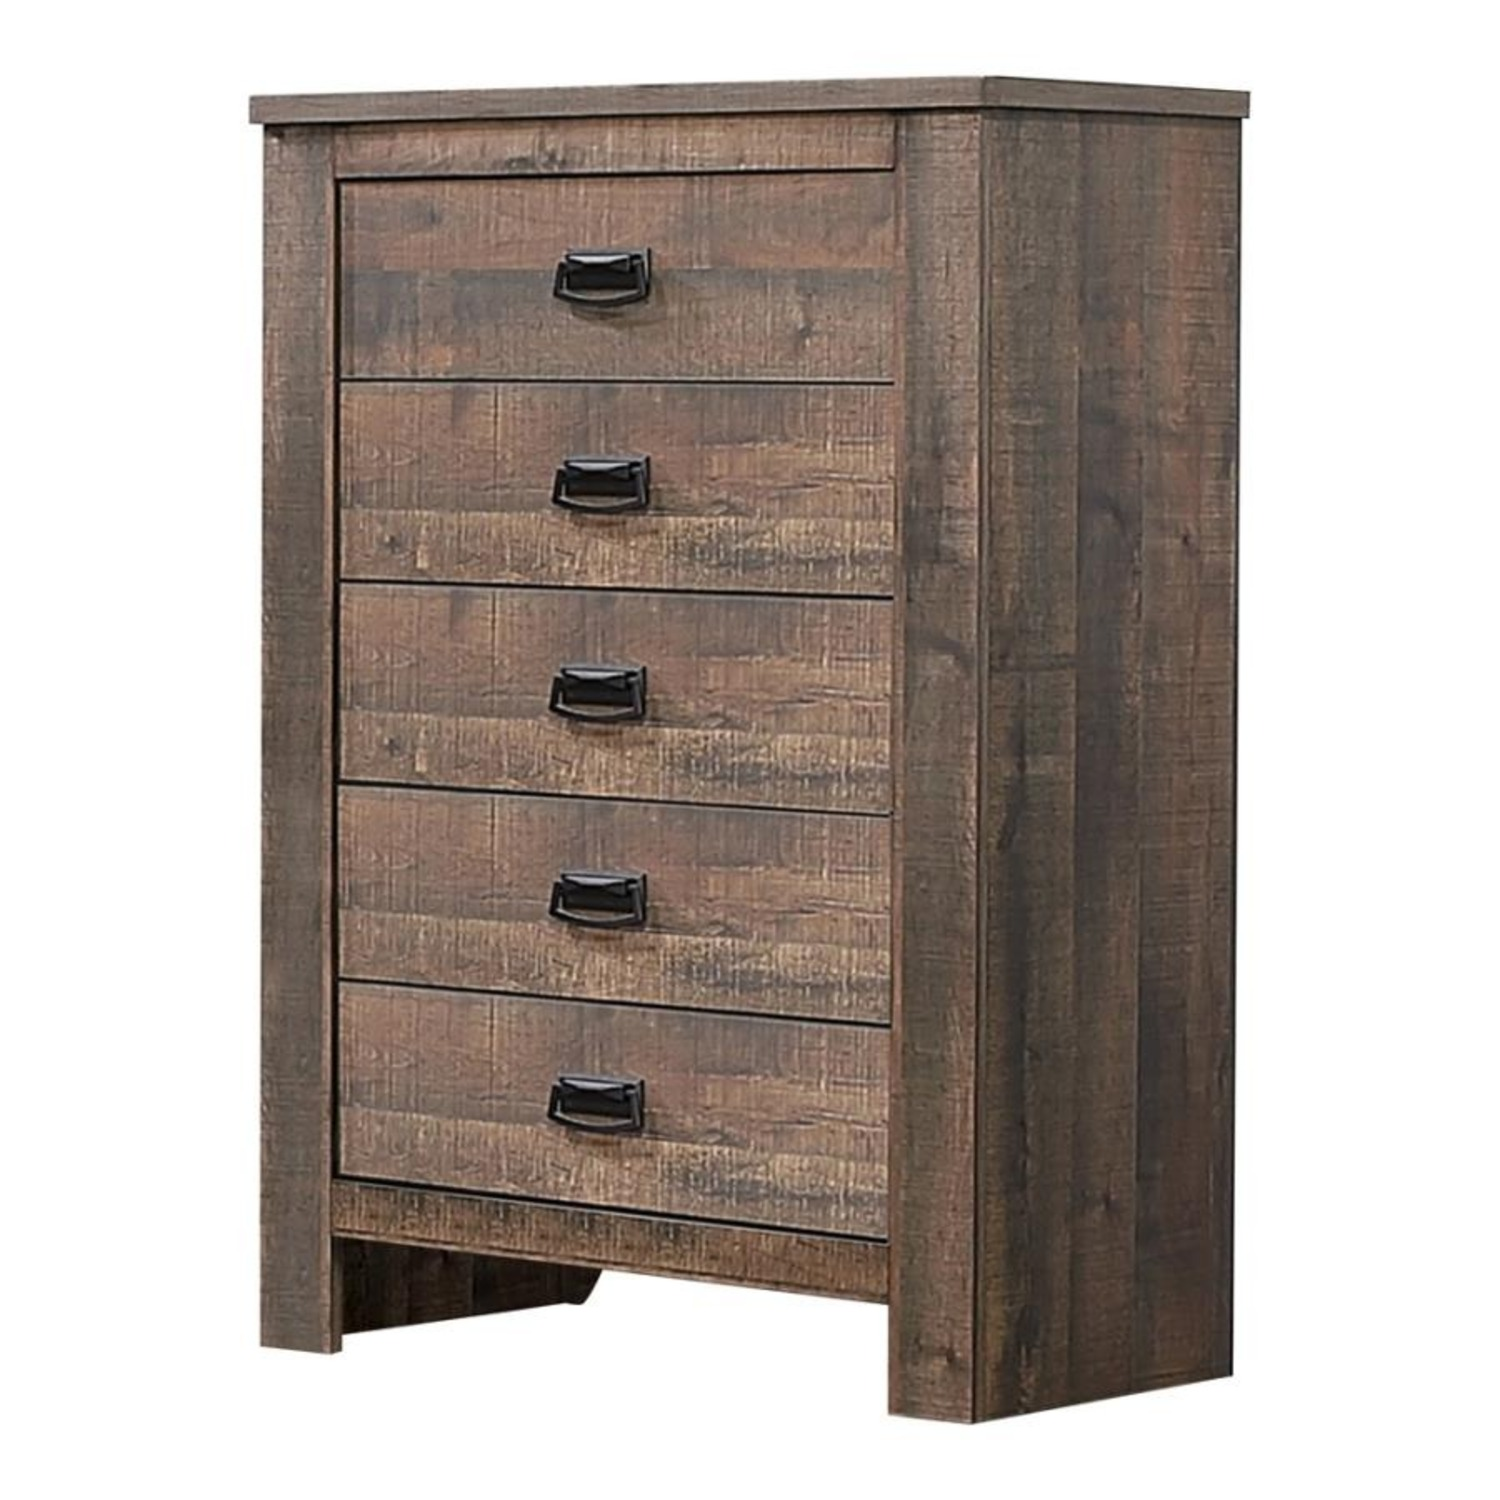 Chest In Weathered Oak Finish W/ Bail Handle - image-0